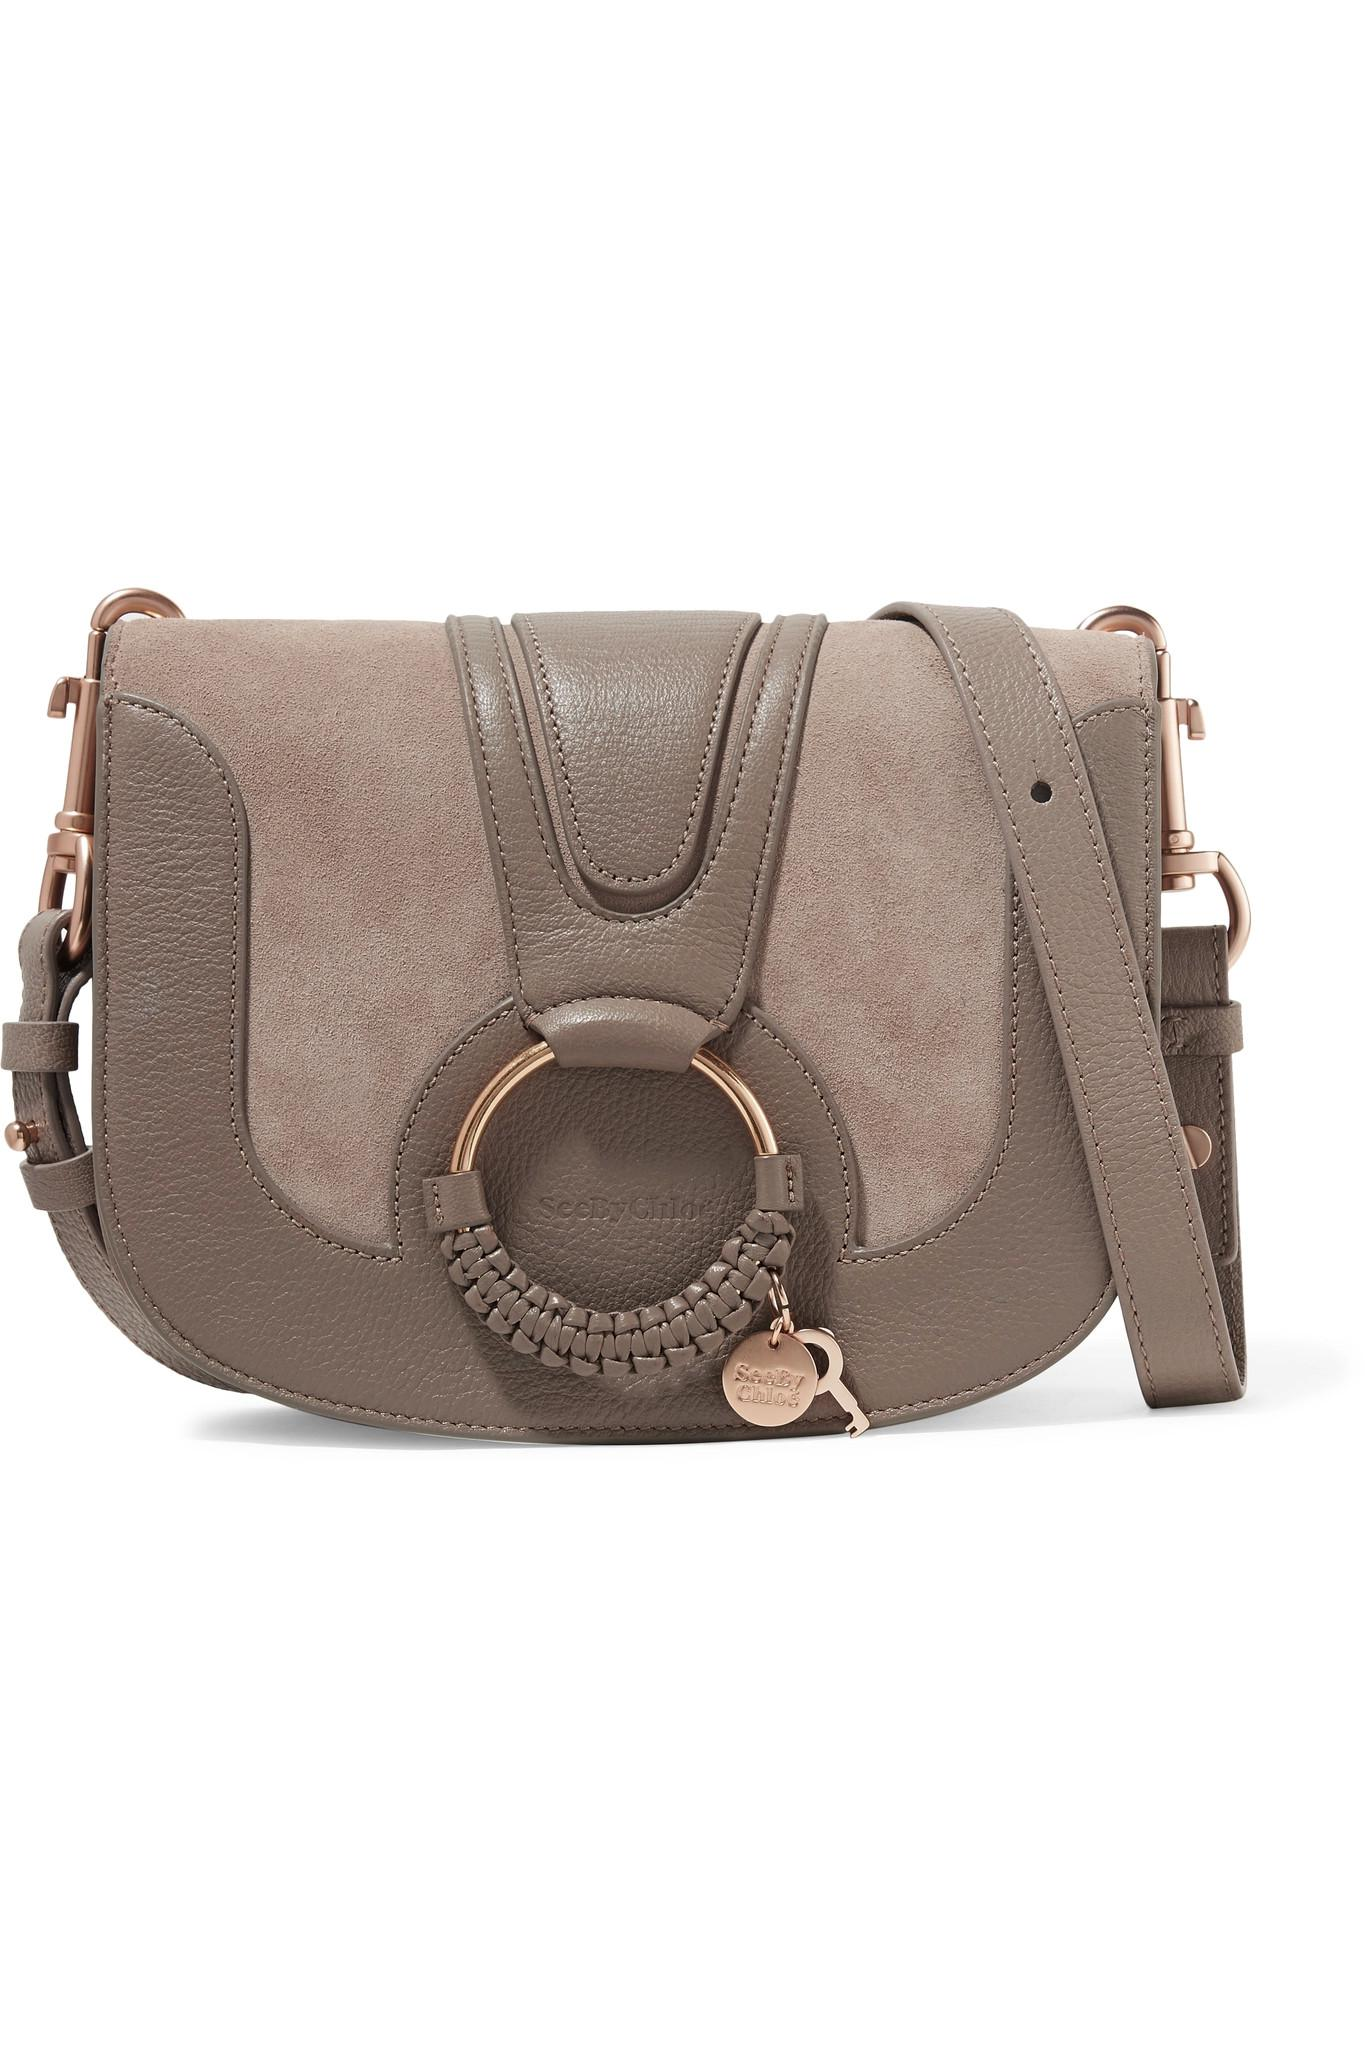 Hana Small Textured-leather And Suede Shoulder Bag - Tan See By Chloé Classic Online Discount Huge Surprise Cheapest Price Sale Online Clearance Sneakernews Where To Buy Cheap Real JKCOI5QBw